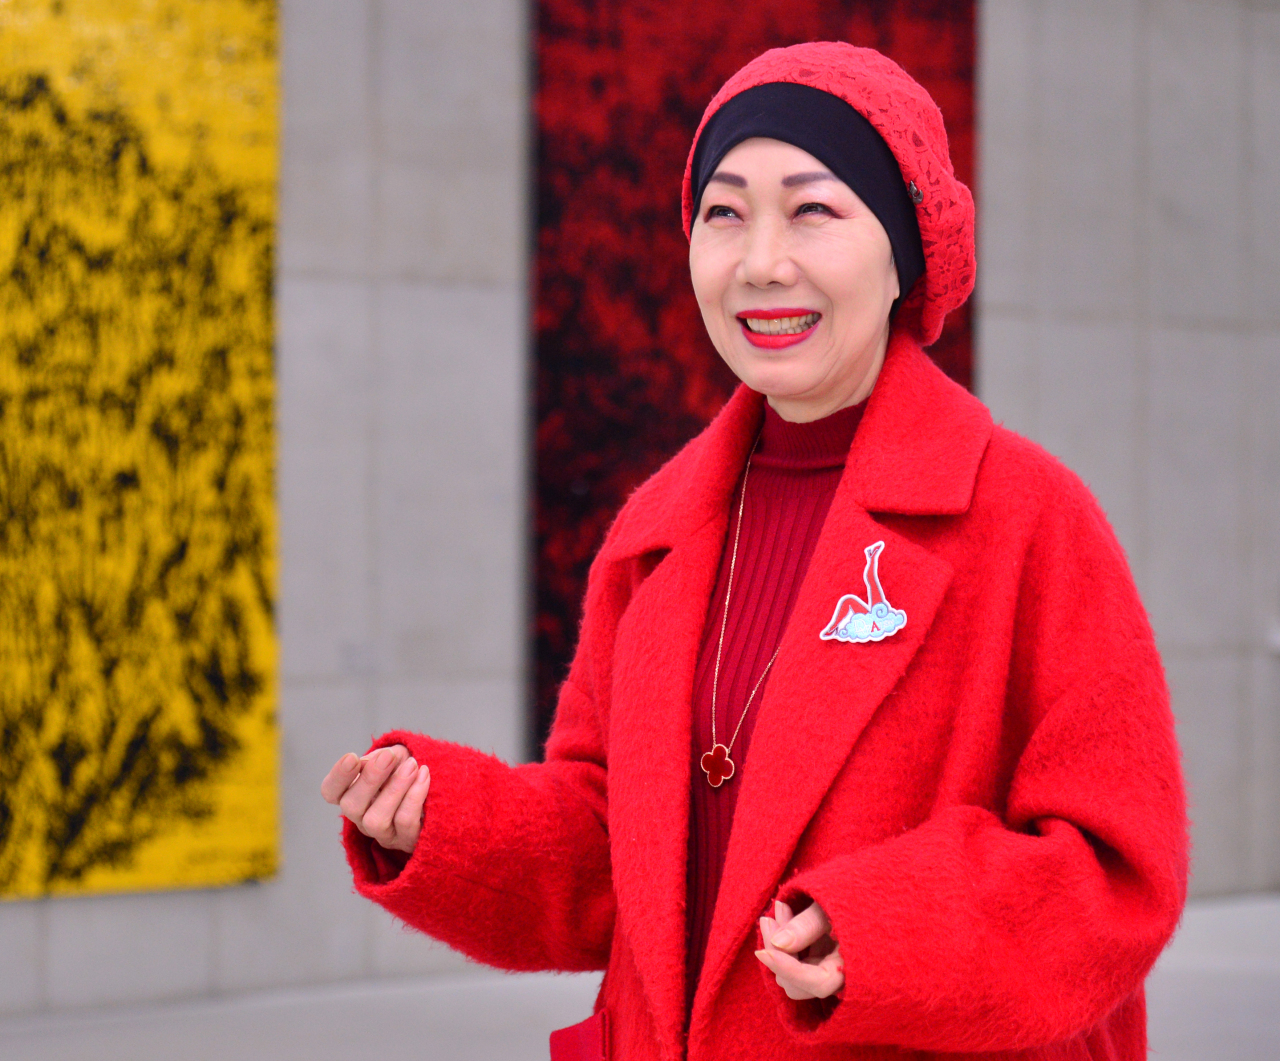 Savina Lee, director of Savina Museum of Contemporary Art, poses at the museum on Wednesday. (Park Hyun-koo/The Korea Herald)